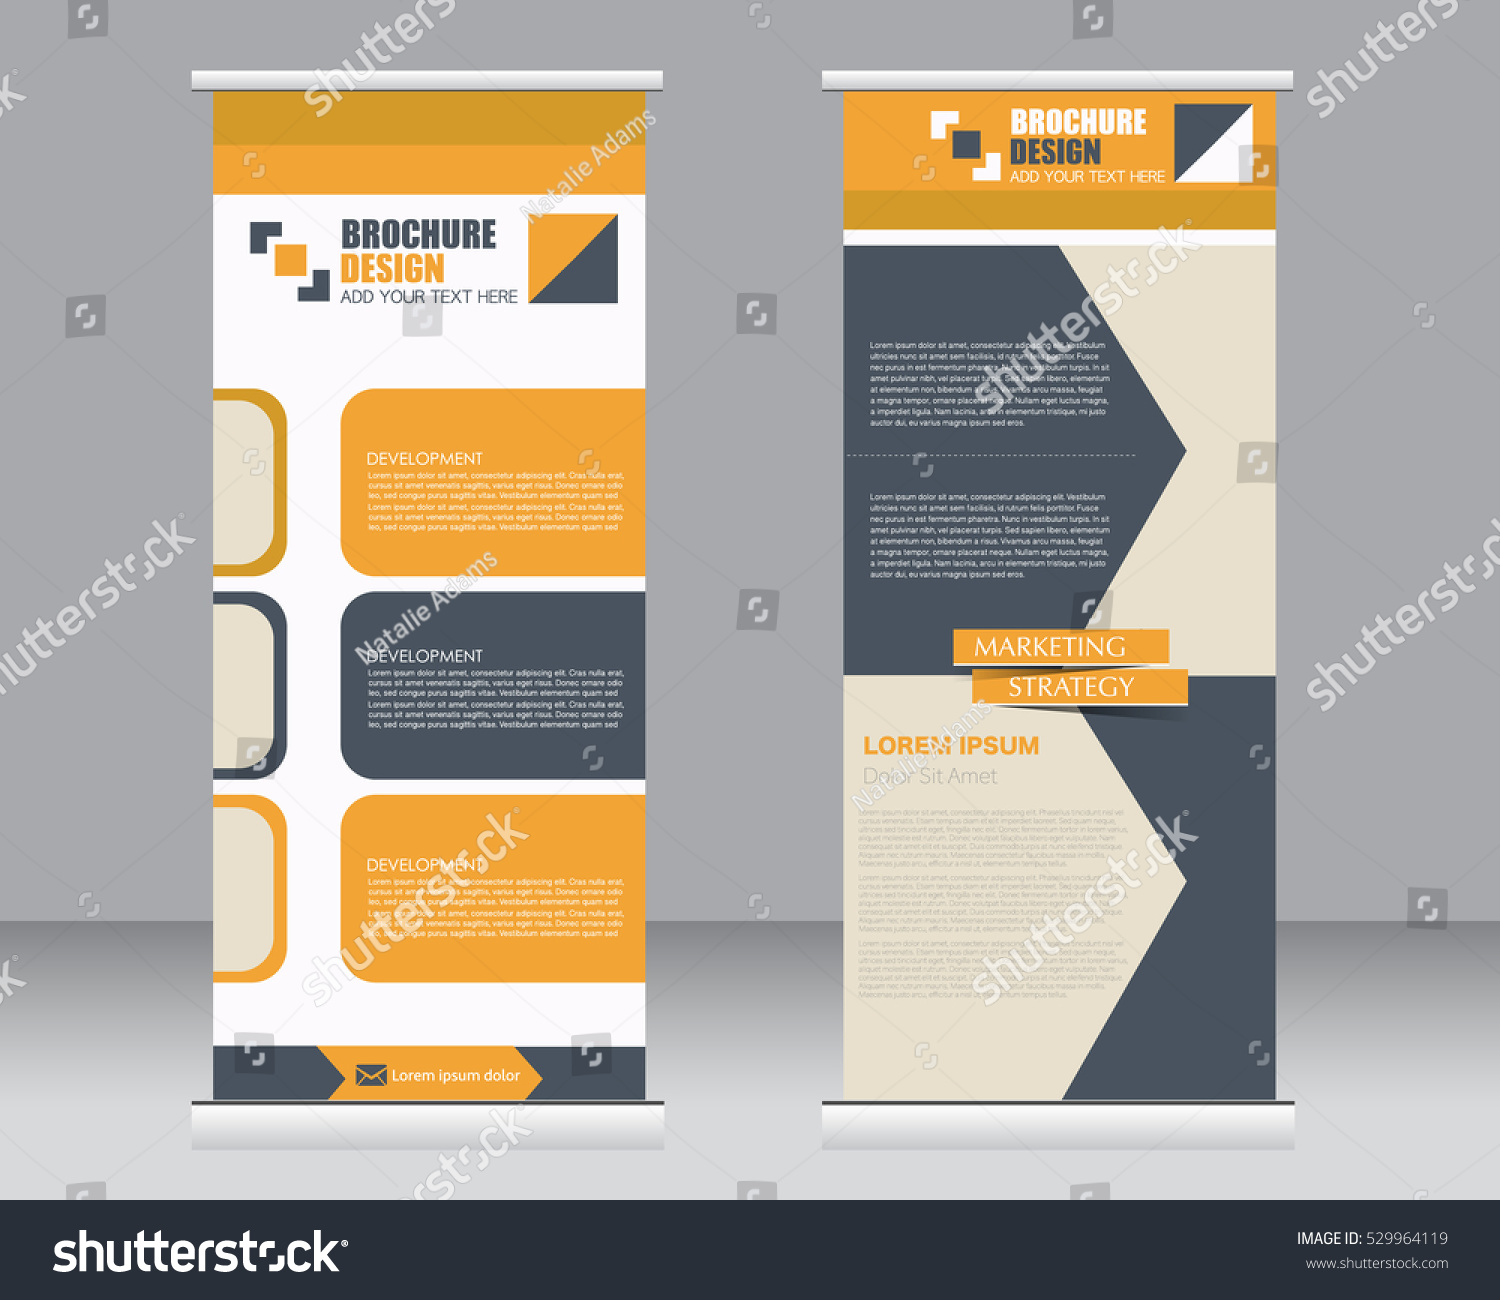 Roll up stand design templates 9287415 - hitori49.info